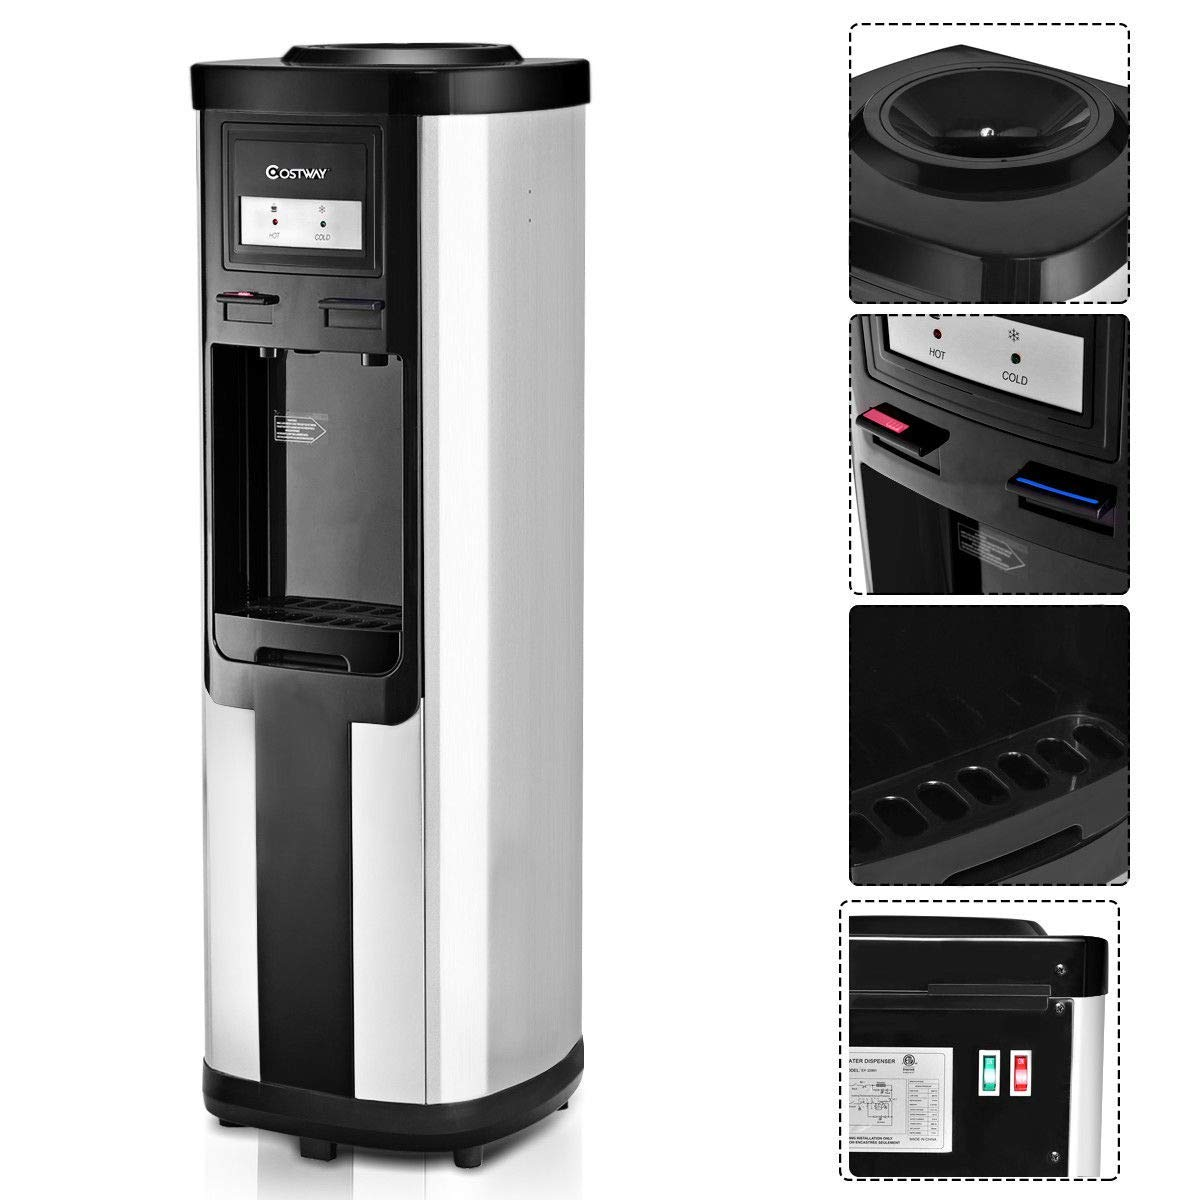 Costway Water Cooler Dispenser 5 Gallon Top Loading Water Dispenser Stainless Steel Freestanding Water Cooler W/Hot and Cold Water (Black and Silver) by COSTWAY (Image #5)